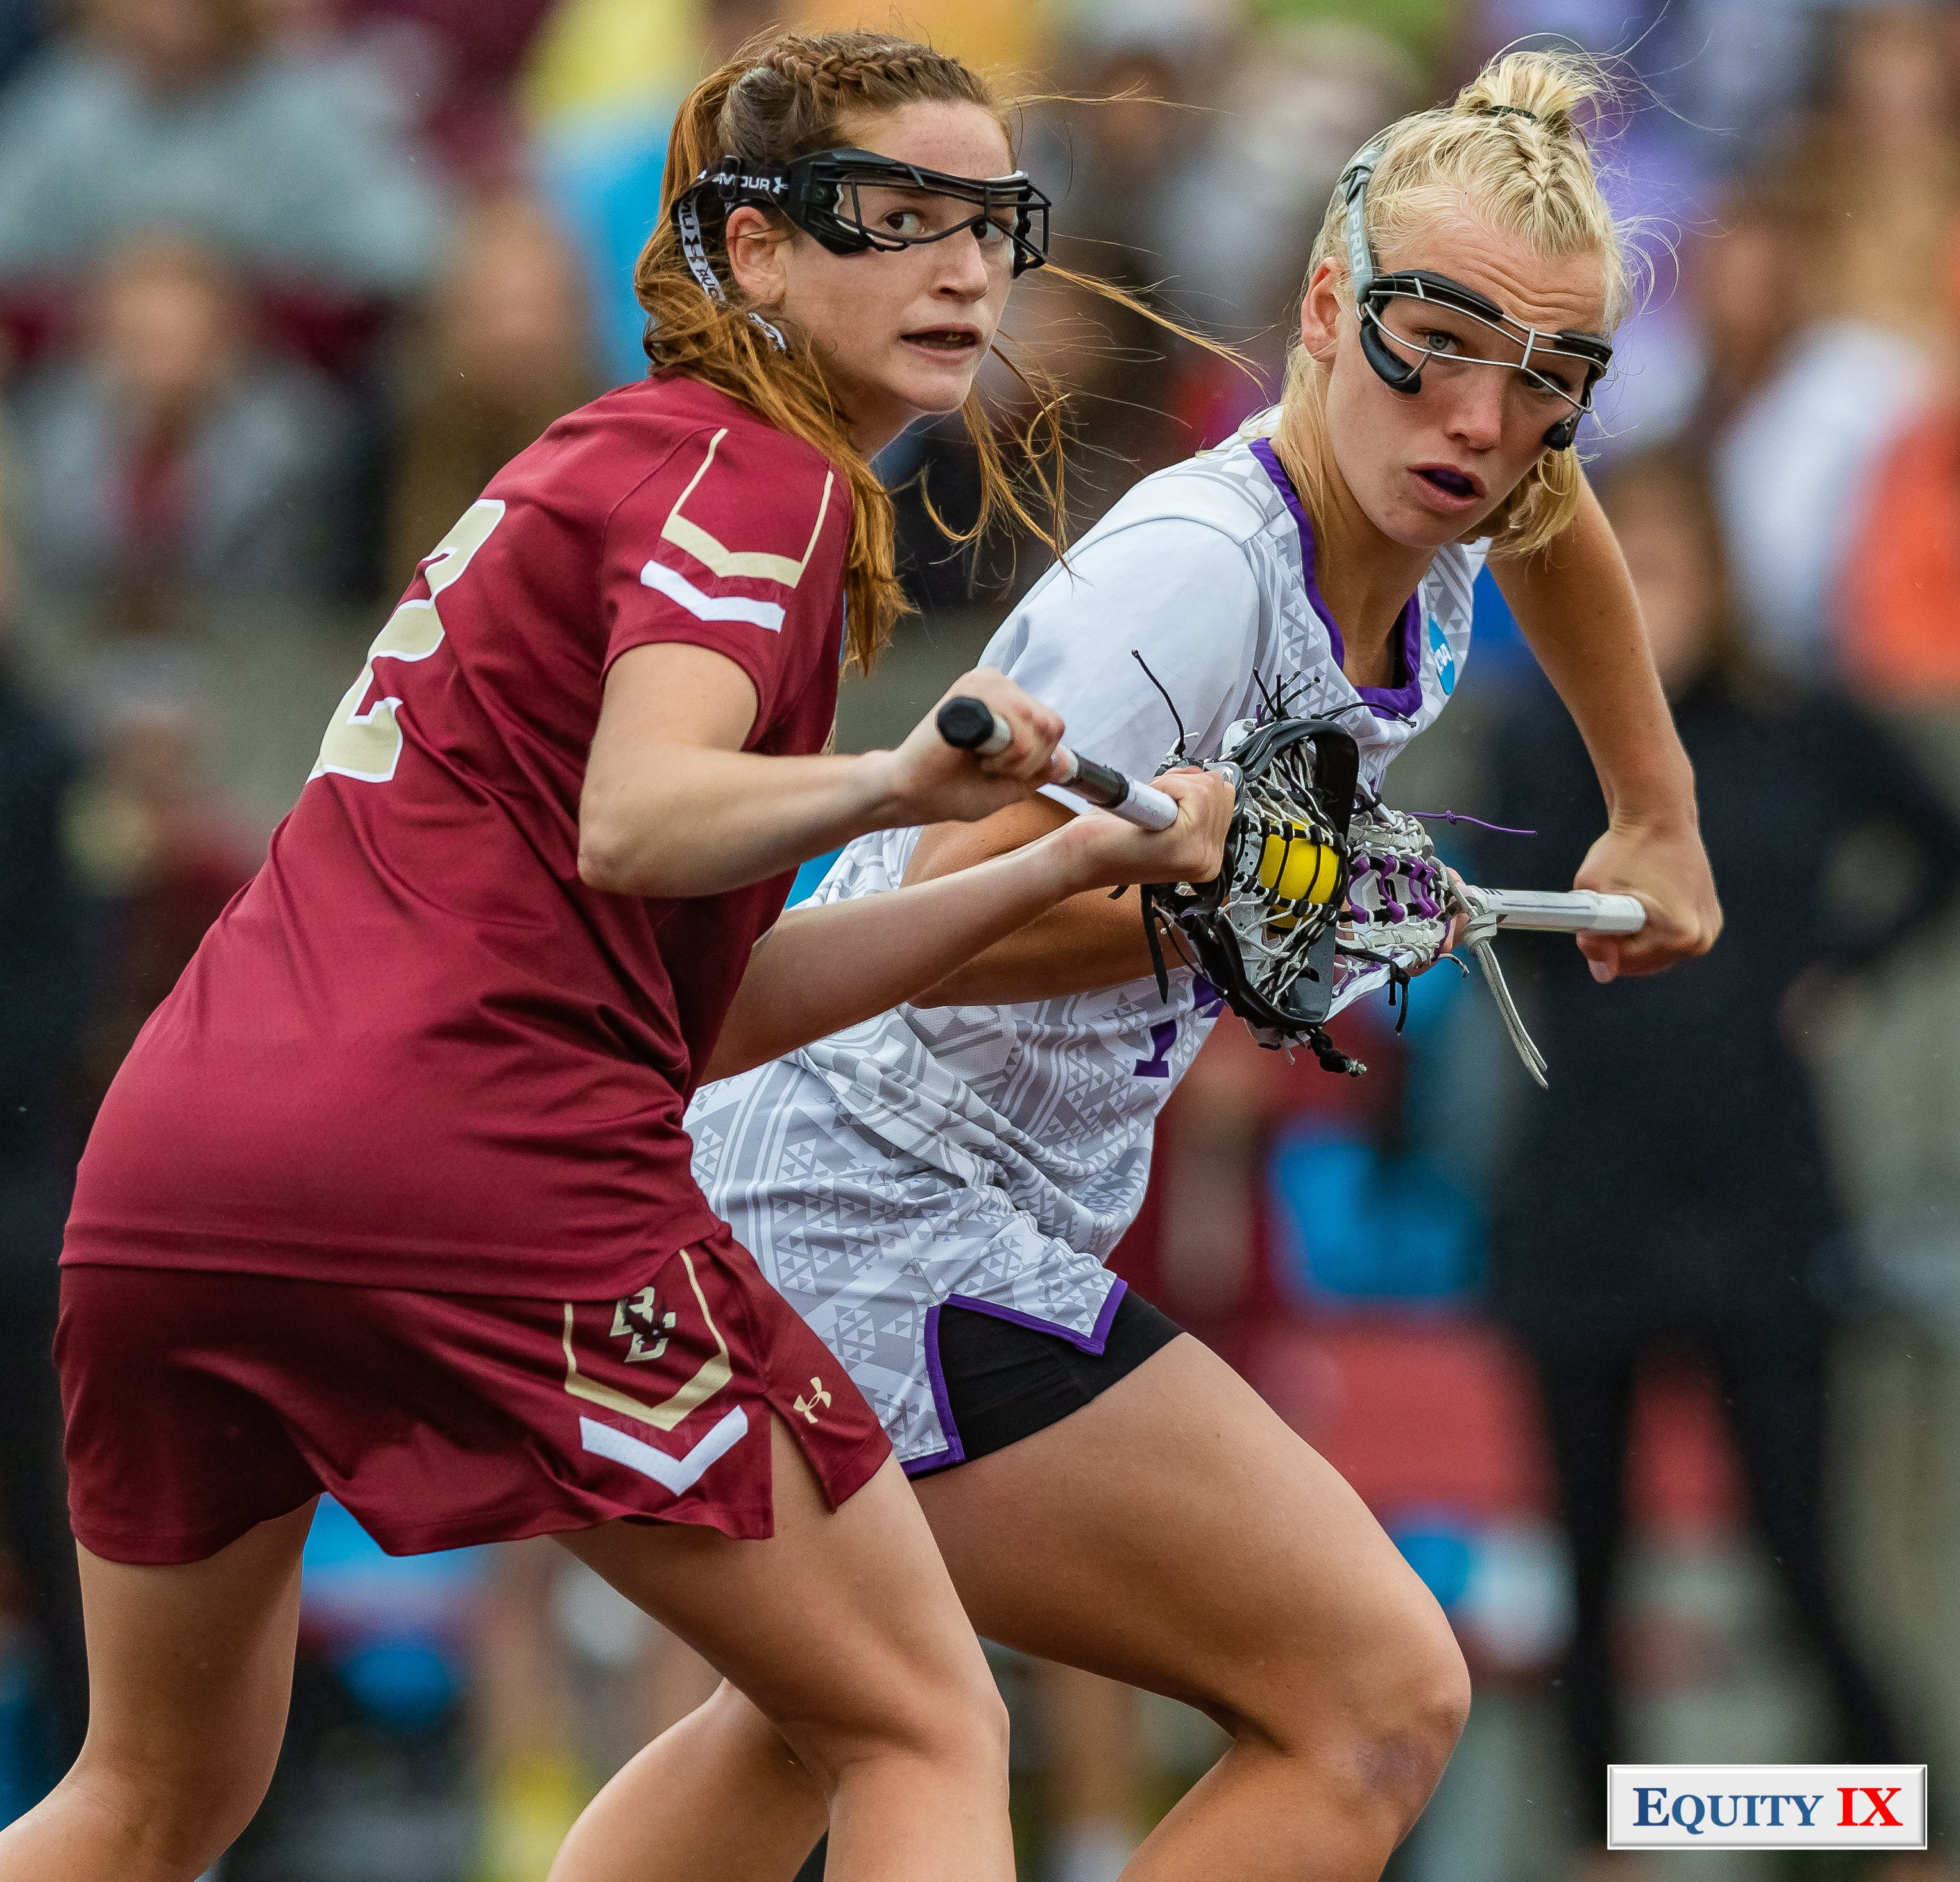 #14 Kristen Gaudian (JMU) with blond hair draws against #2 Sam Apuzzo (Boston College) red jersey both are wearing goggles and looking at the referee waiting to blow the whistle with a yellow lacrosse ball wedged between the lacrosse sticks - 2018 NCAA Women's Lacrosse Championship Game © Equity IX - SportsOgram - Leigh Ernst Friestedt